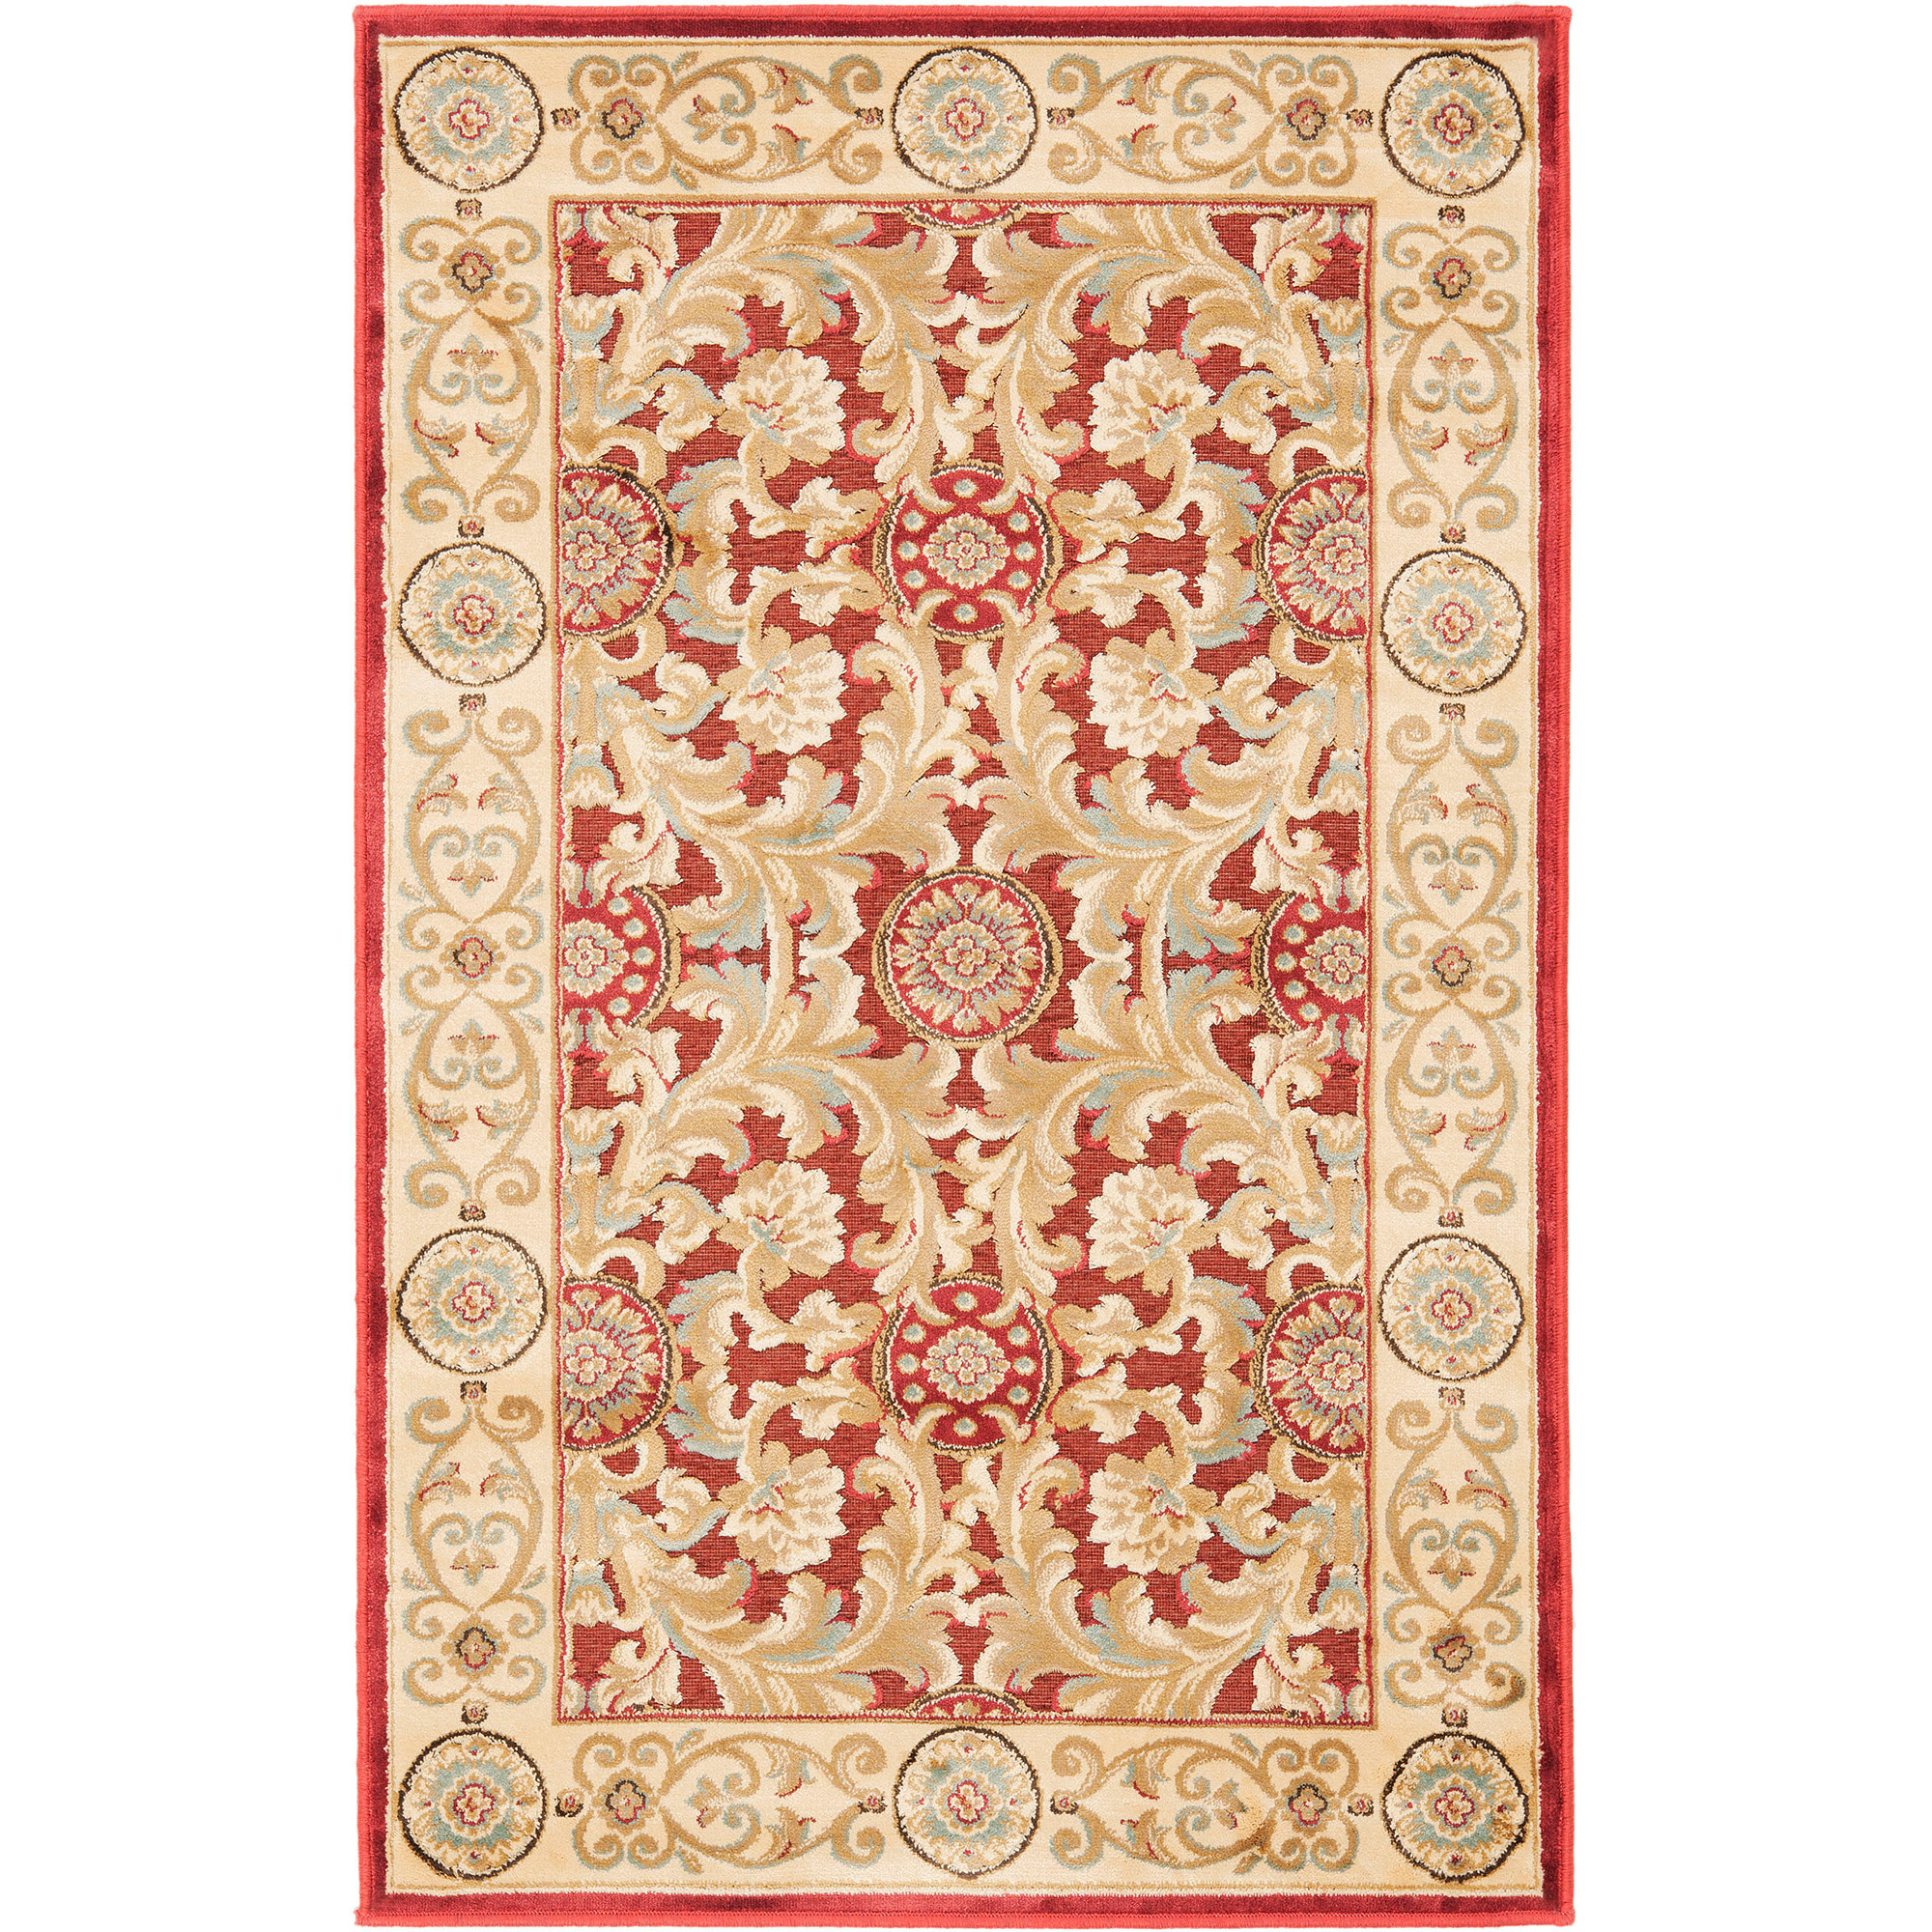 Safavieh Paradise Stanice Power-Loomed Viscose Area Rug